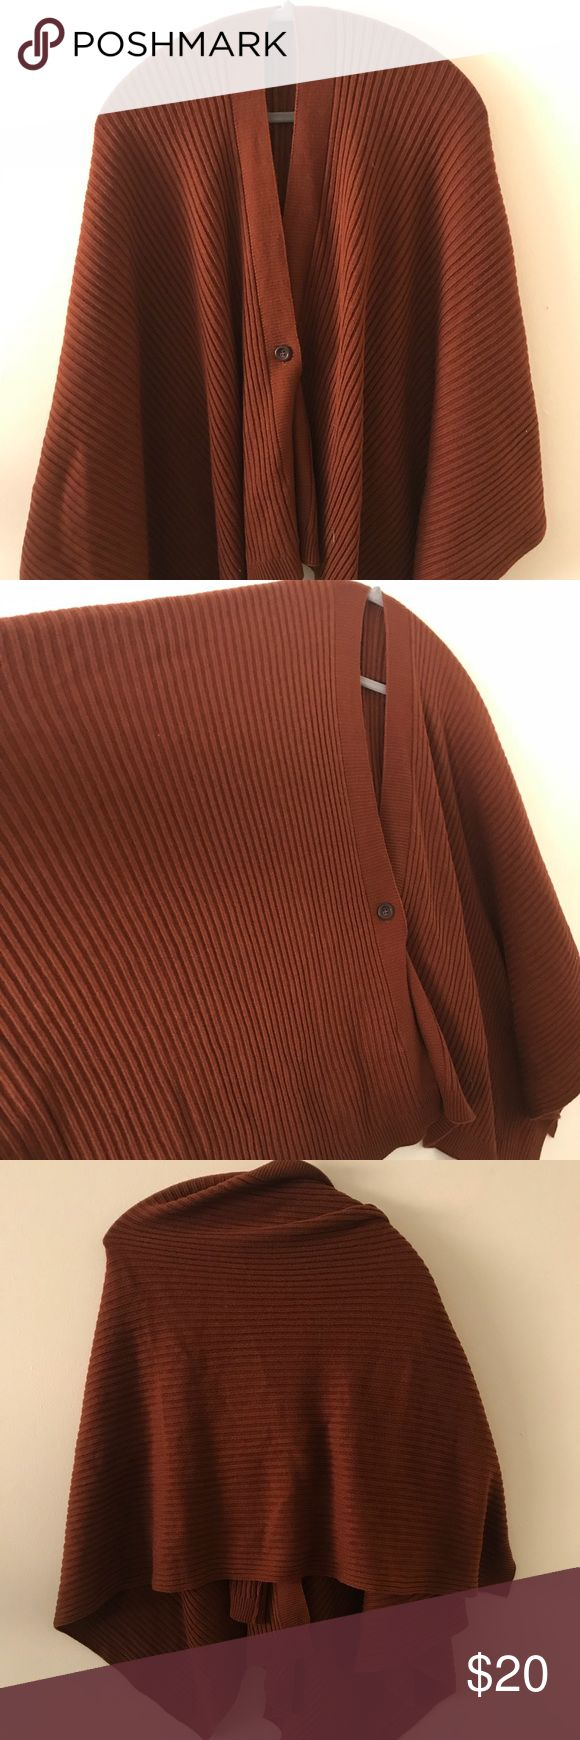 Uniqlo Cape This rust-colored cape can be worn as outerwear or on its own as a sweater. It can also be draped like an oversized scarf. Uniqlo Sweaters